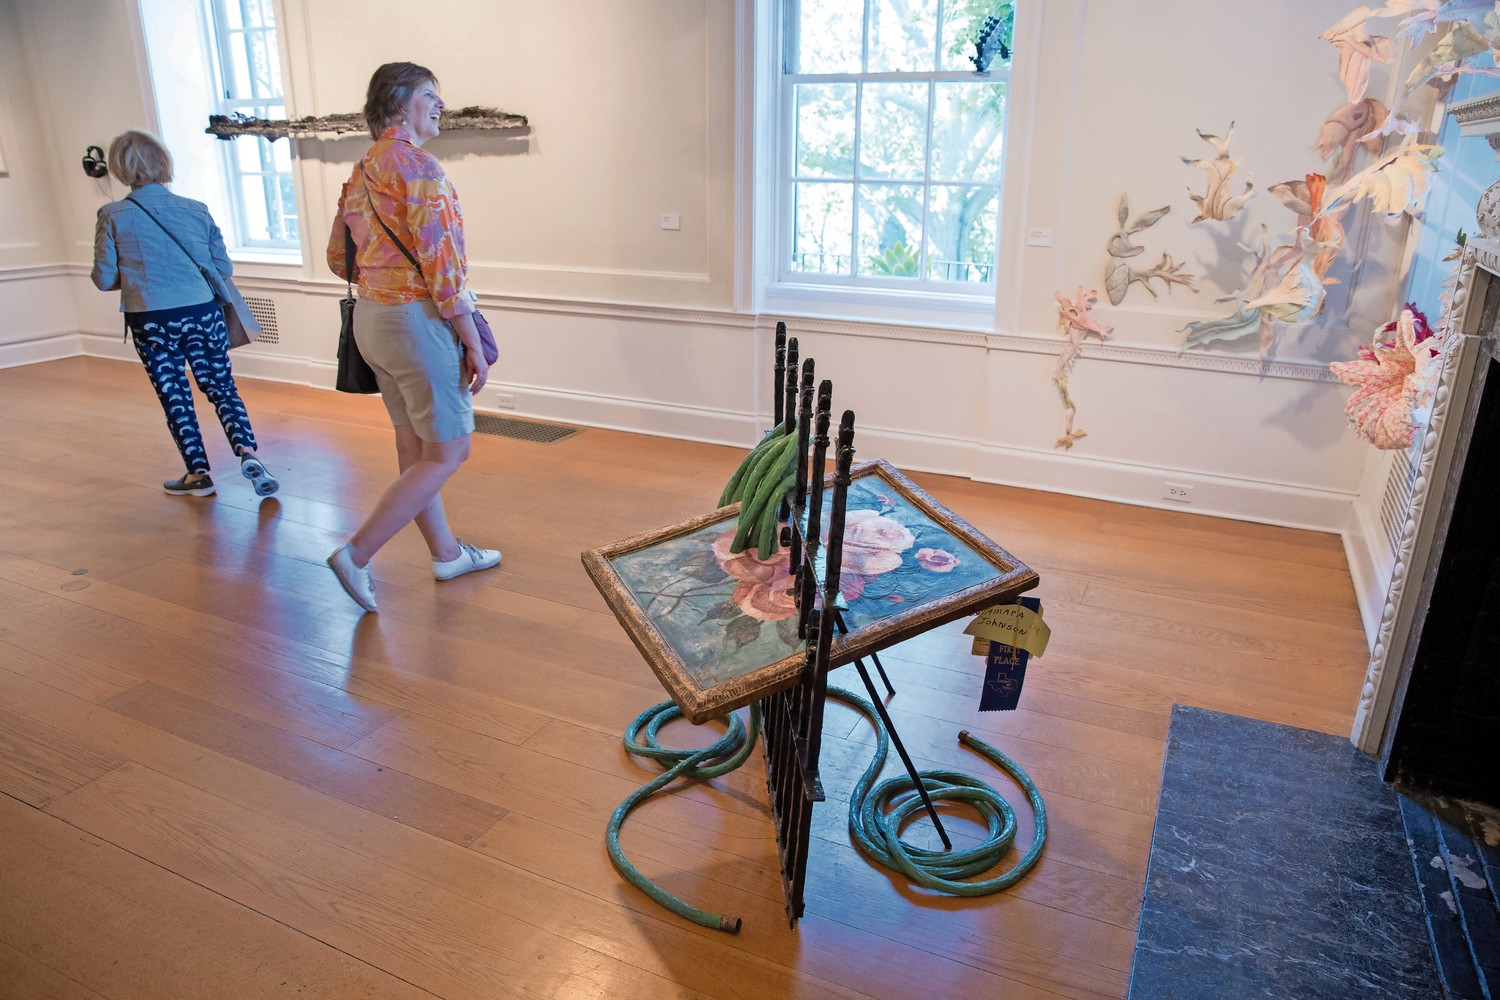 Wave Hill visitors look at works in the Glyndor Gallery. The exhibition, featuring 50 alumni artists, celebrates the 10th anniversary of the Sunroom Project Space, which invites local artists to create work related to Wave Hill. The exhibit, 'Call & Response' runs through Dec. 3.